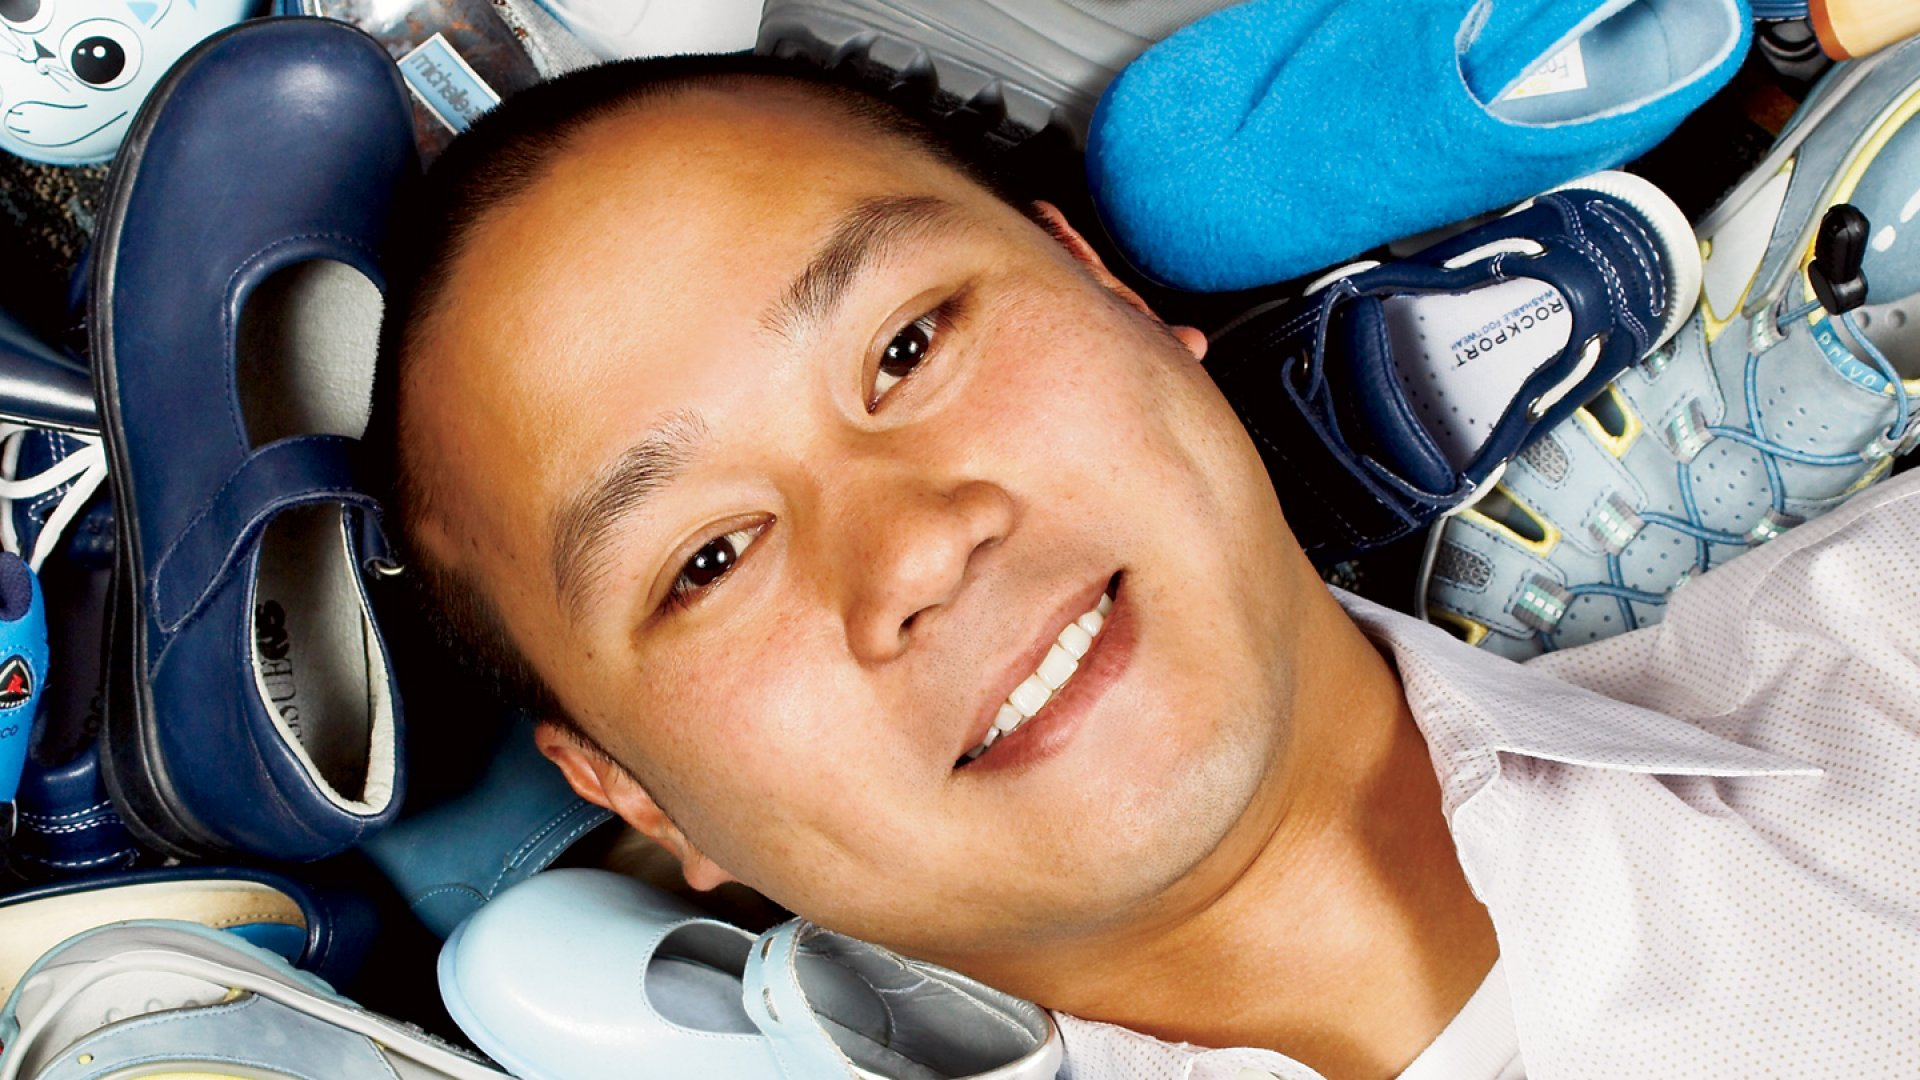 SHOE FETISH